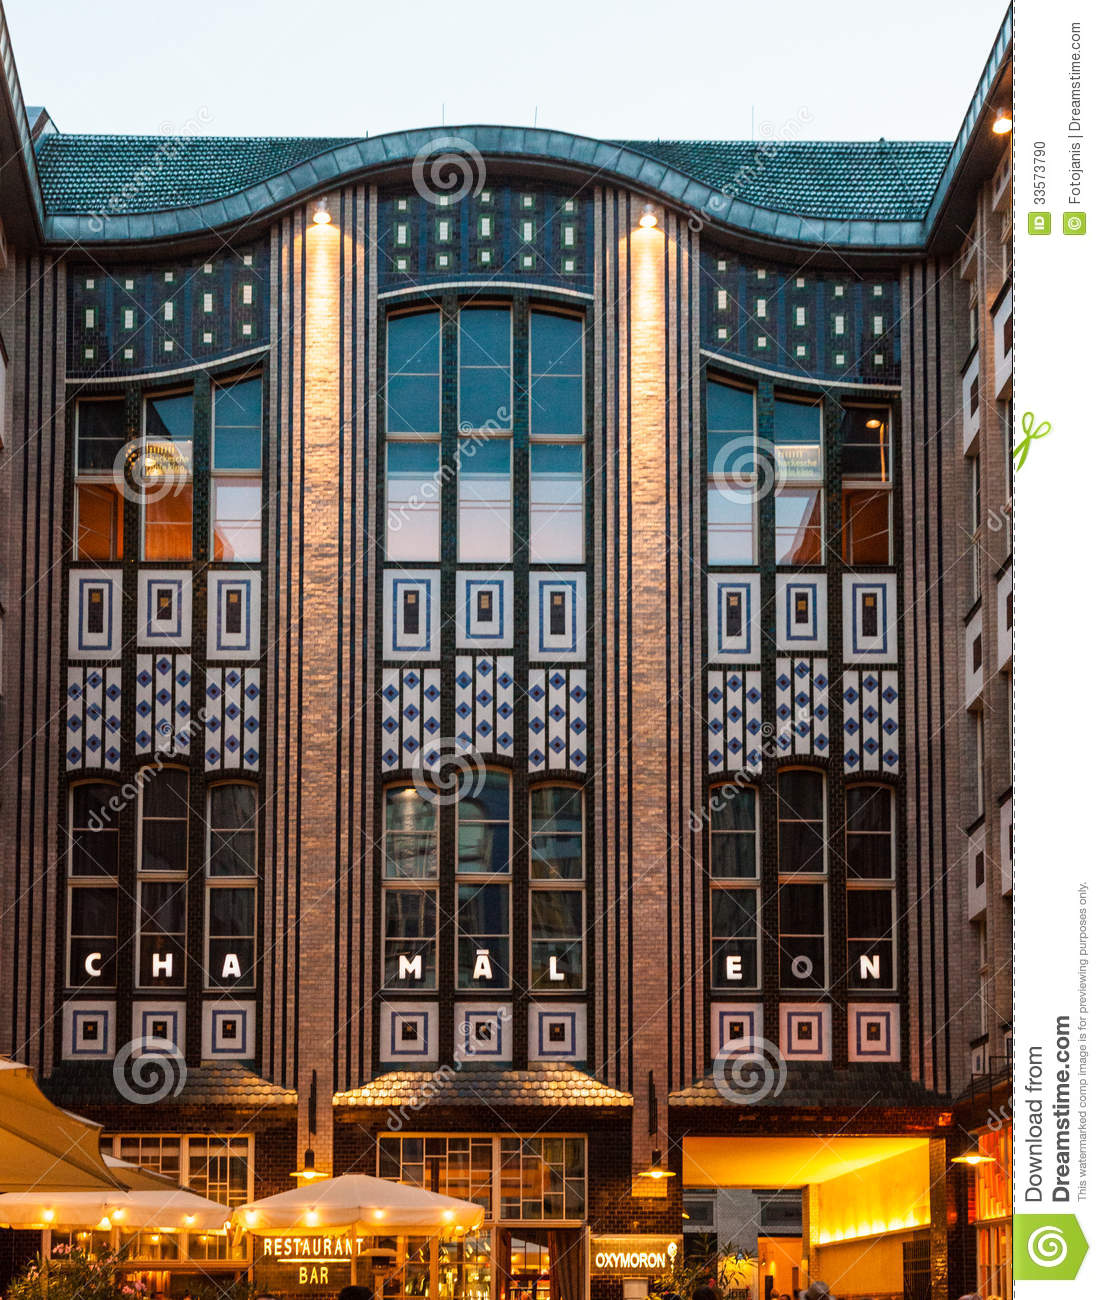 The Jugendstil - Art Nouveau - architecture of the Hackescher Hof in ...